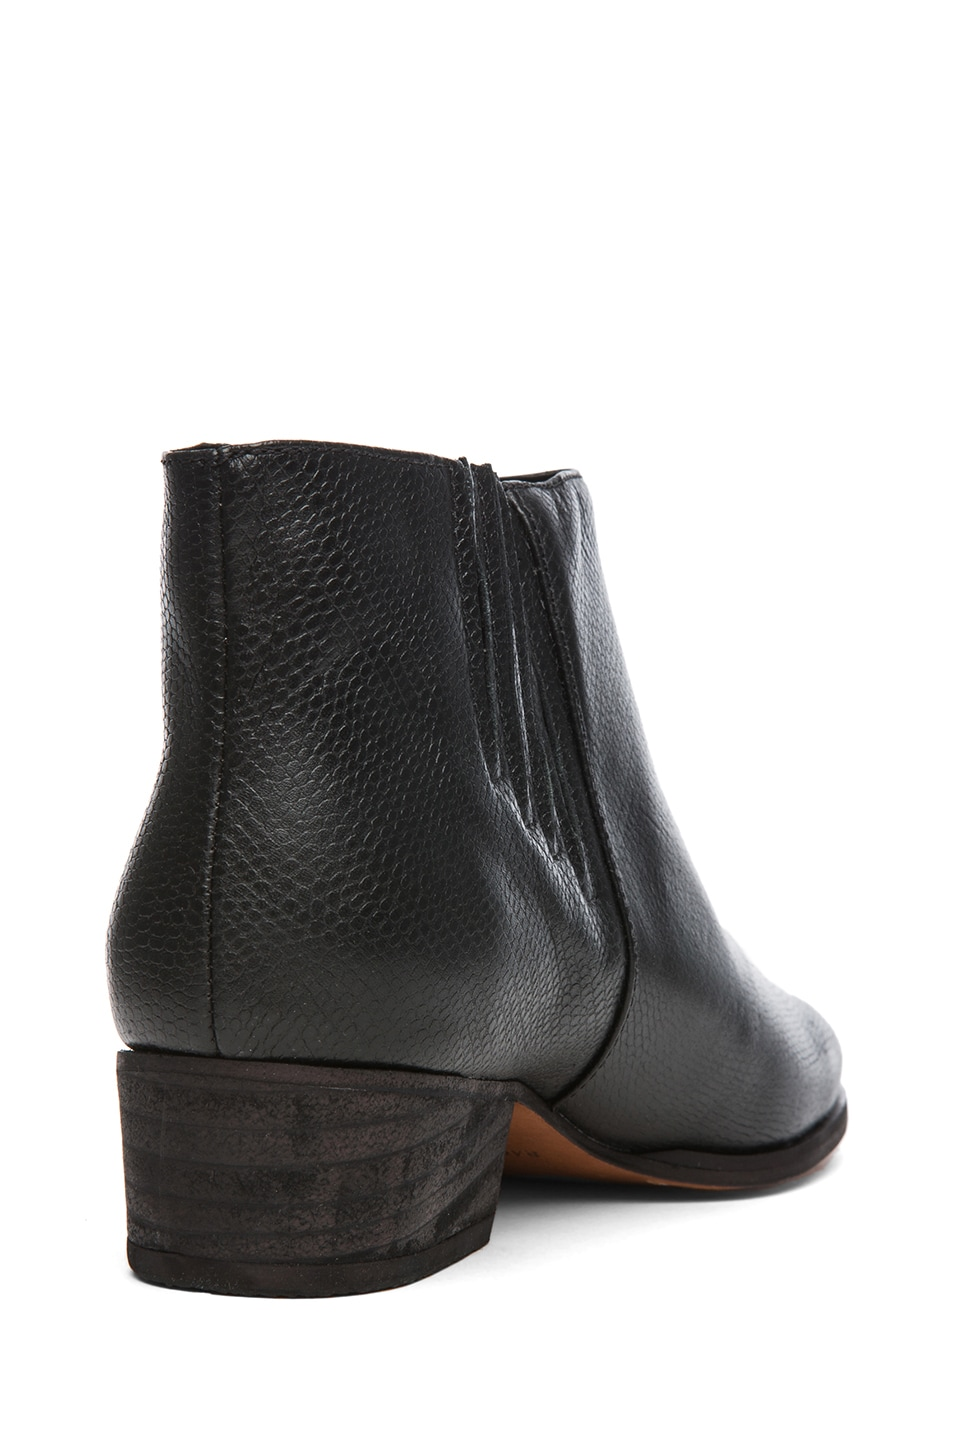 Image 3 of Rachel Comey Coy Leather Bootie in Black